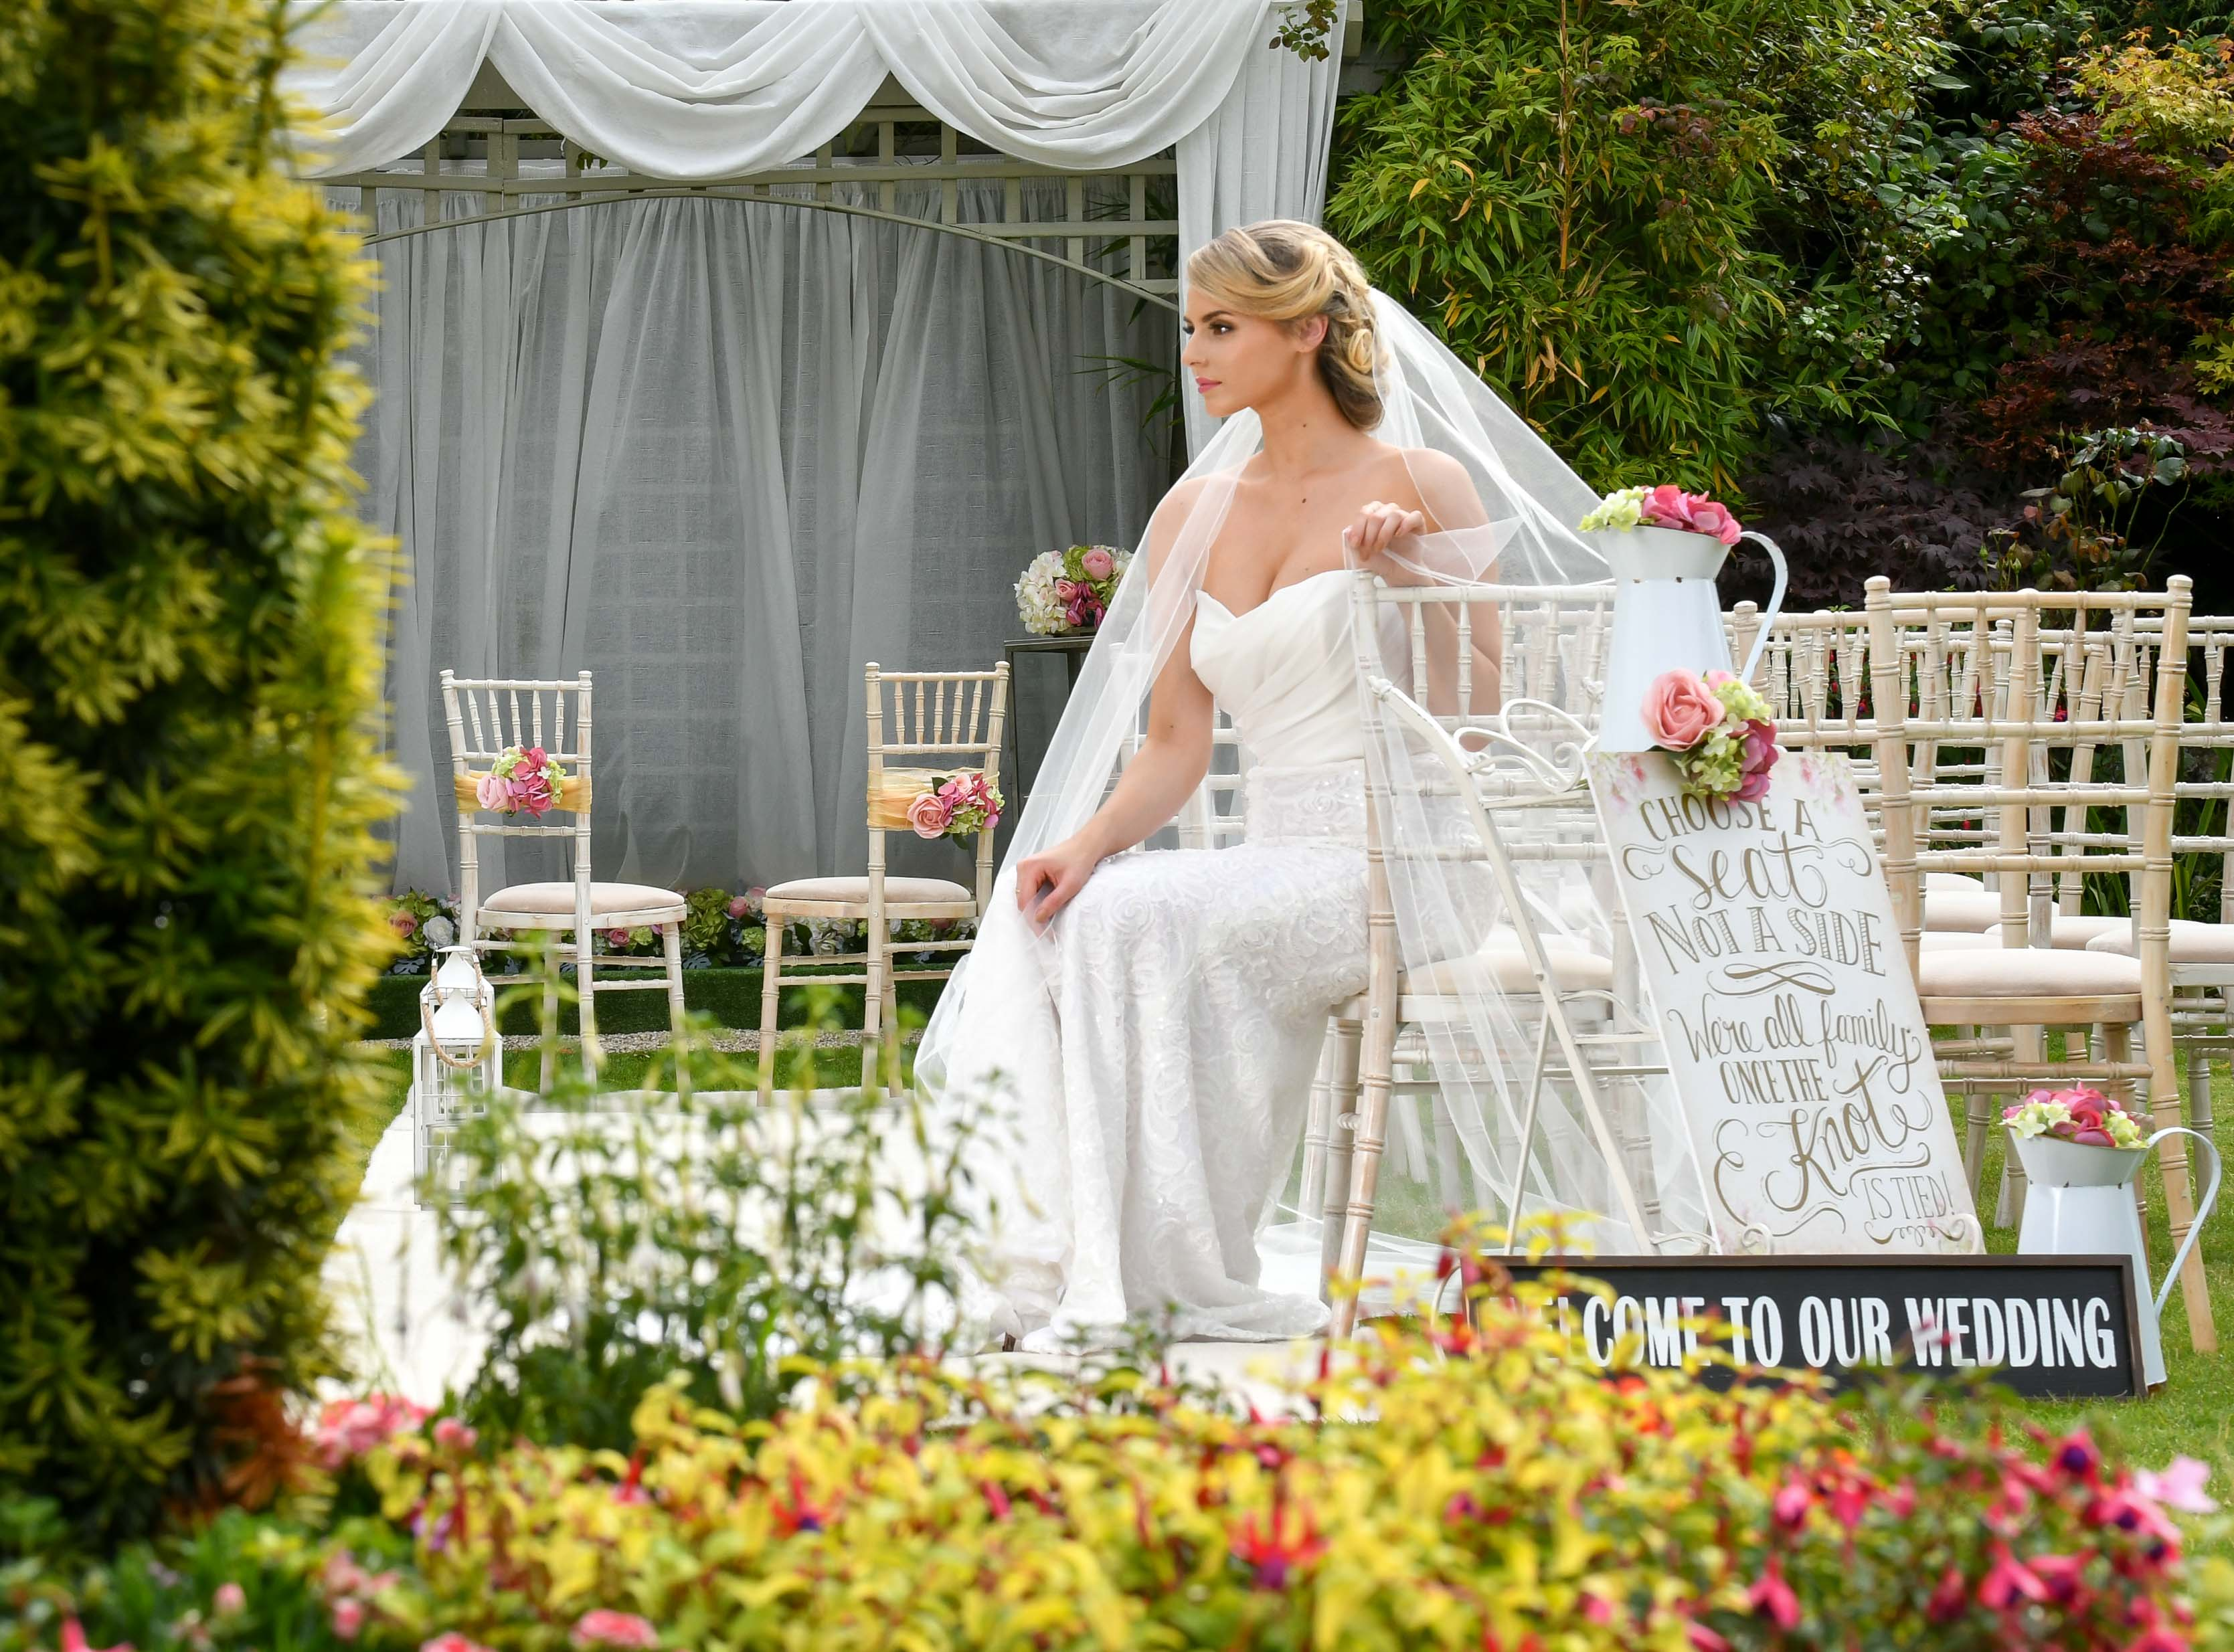 Your Guide To Tying The Knot In The Sunny South East